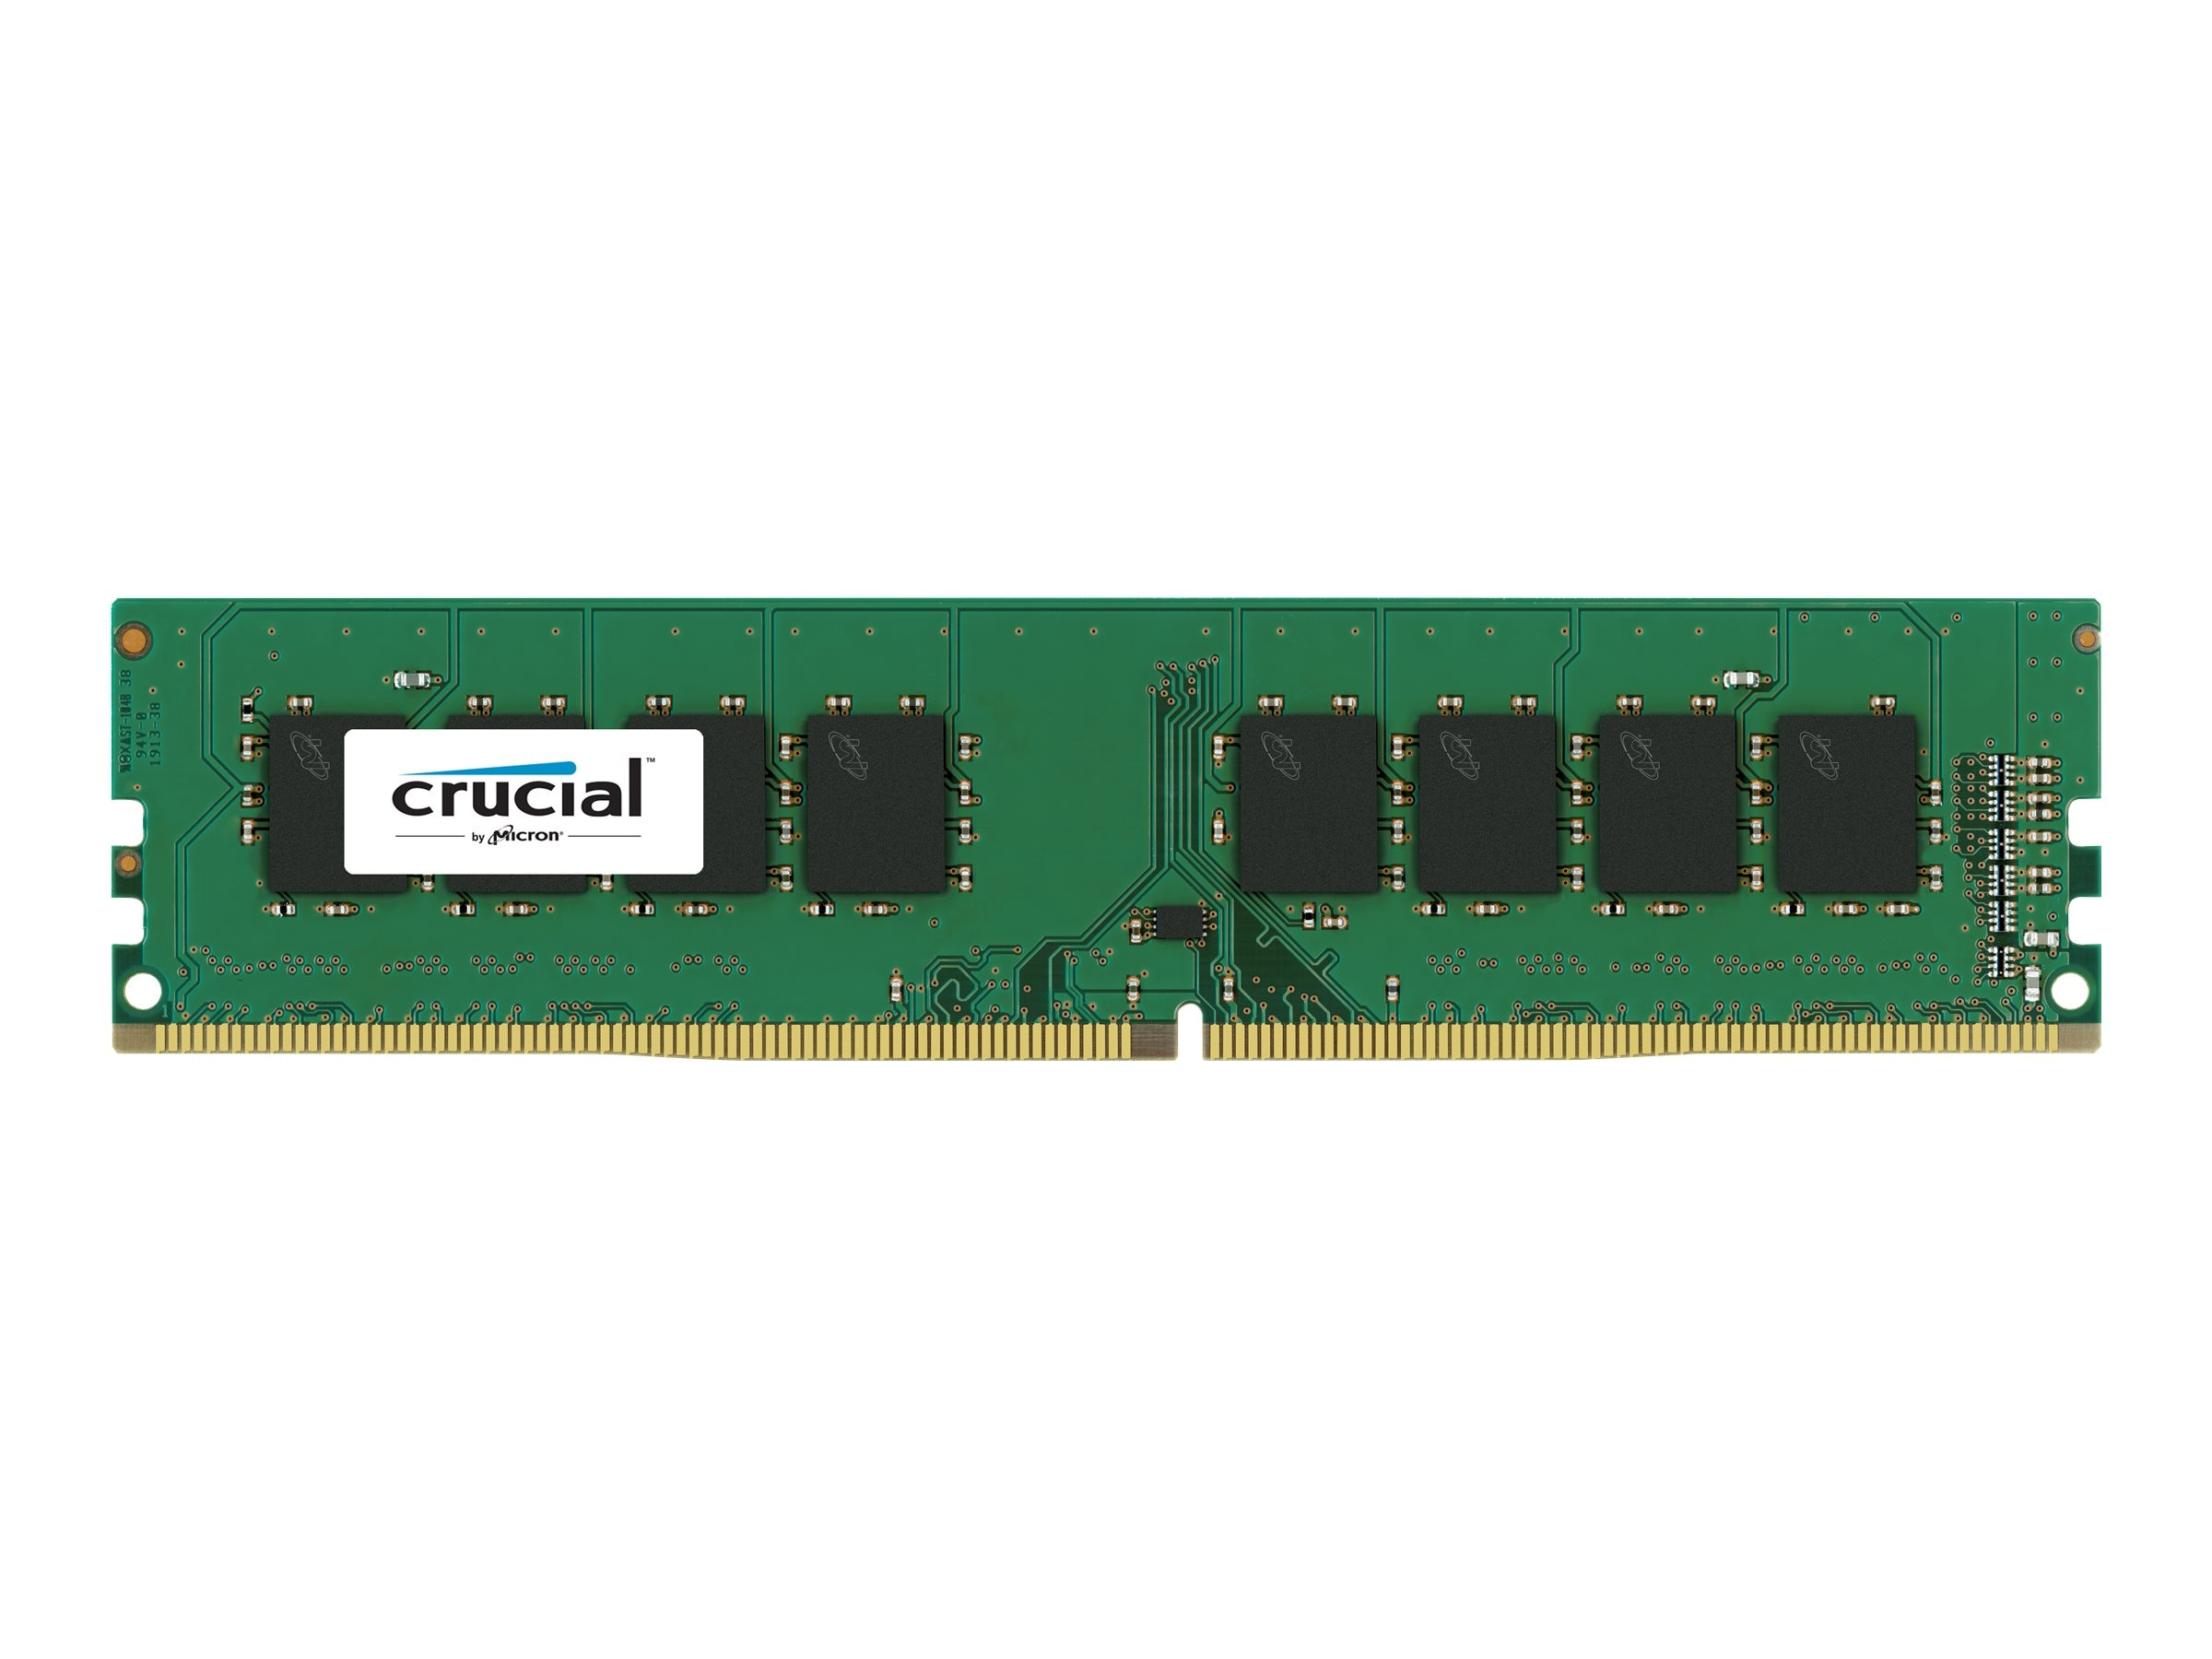 Crucial 8GB PC4-17000 288-pin DDR4 SDRAM UDIMM